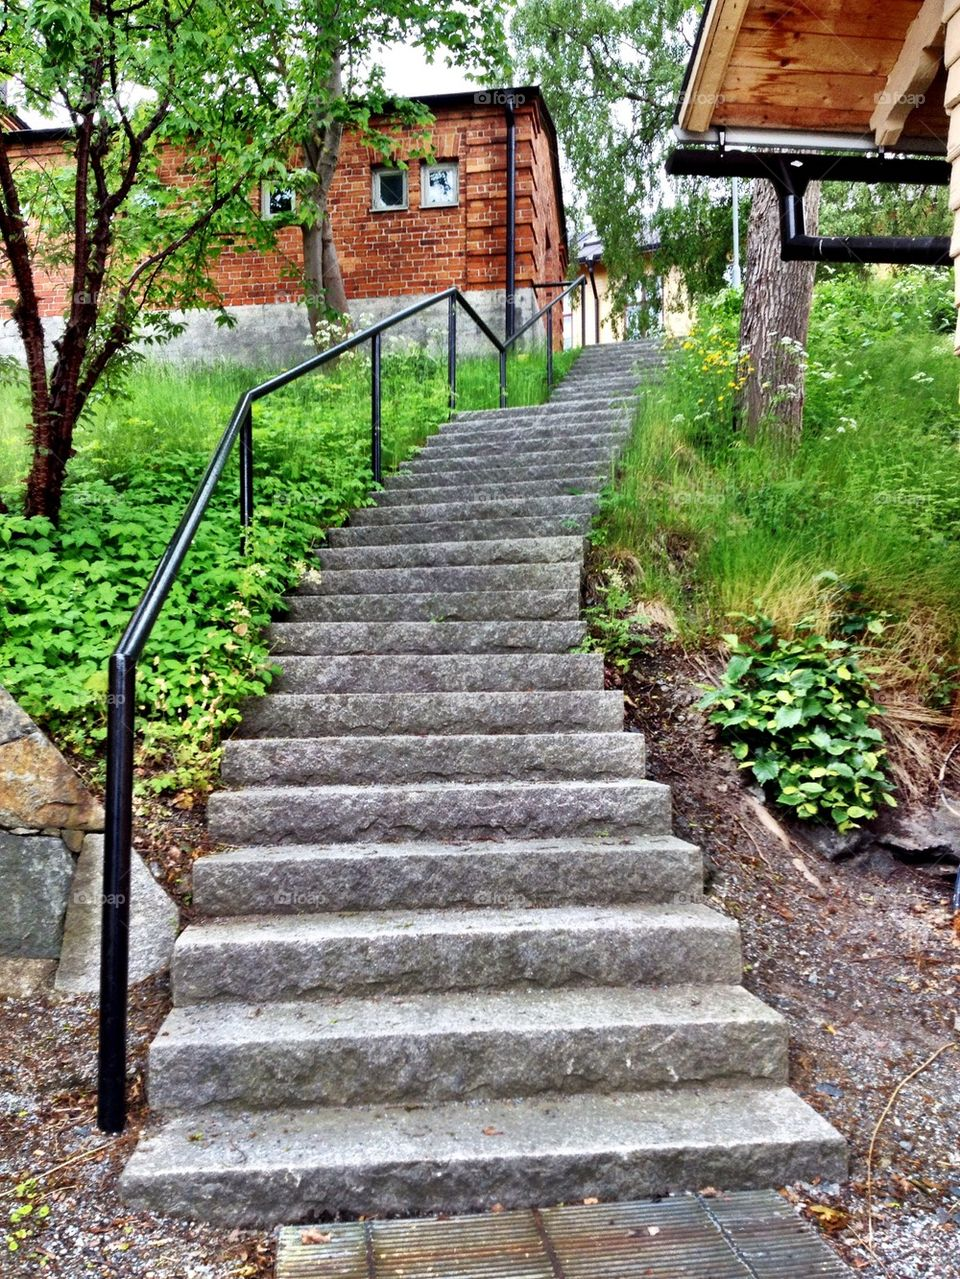 Stairway to the citadell